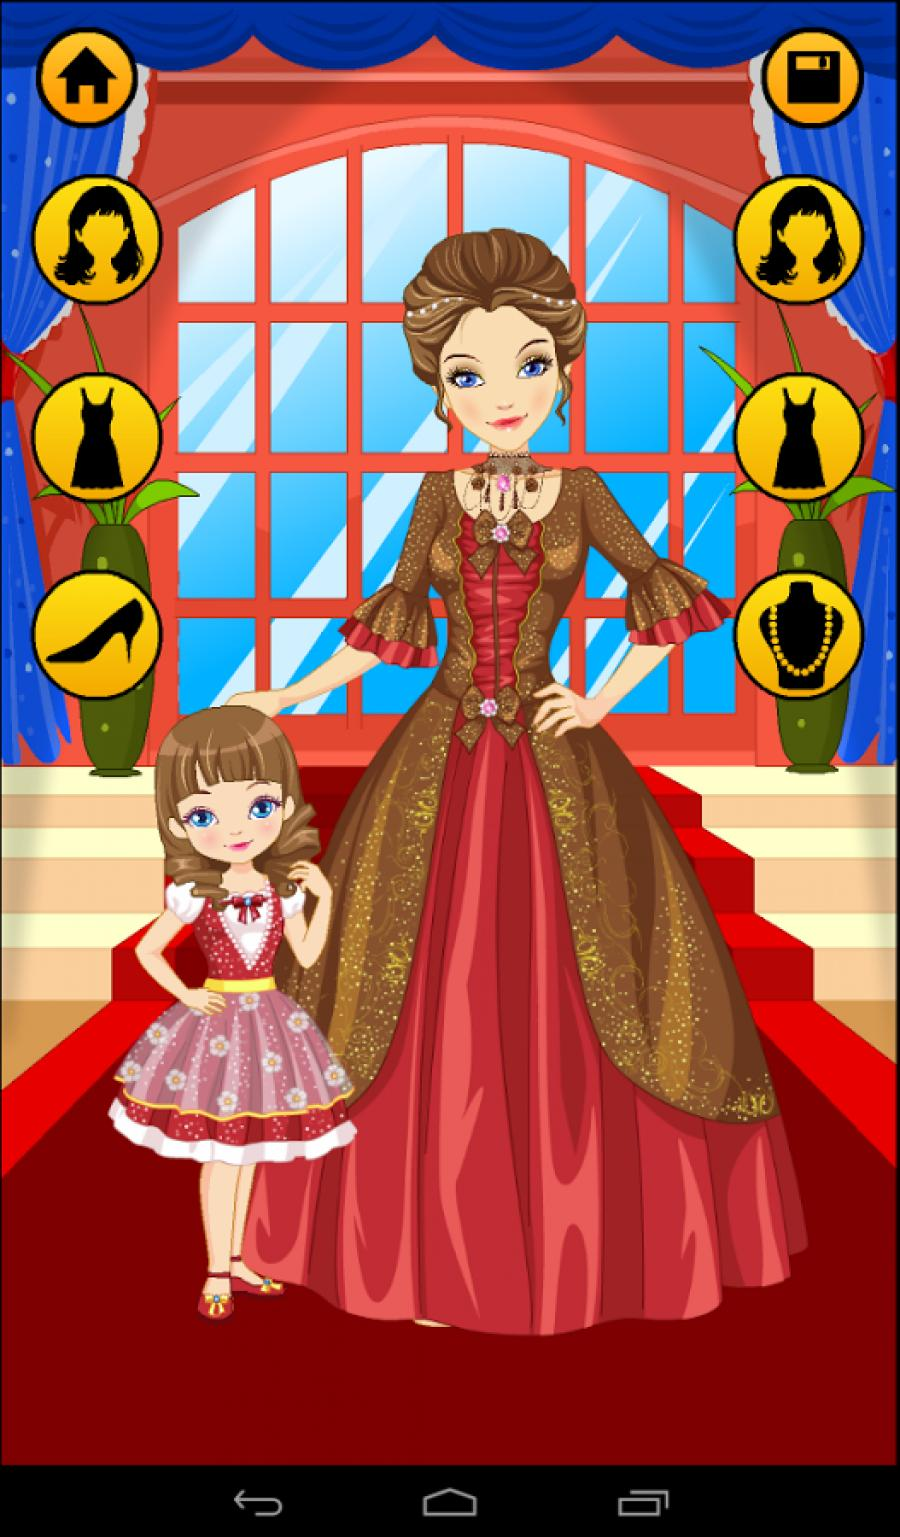 Dress Up Games - Play Free Online Girl Games at Little girl fashion dress up games